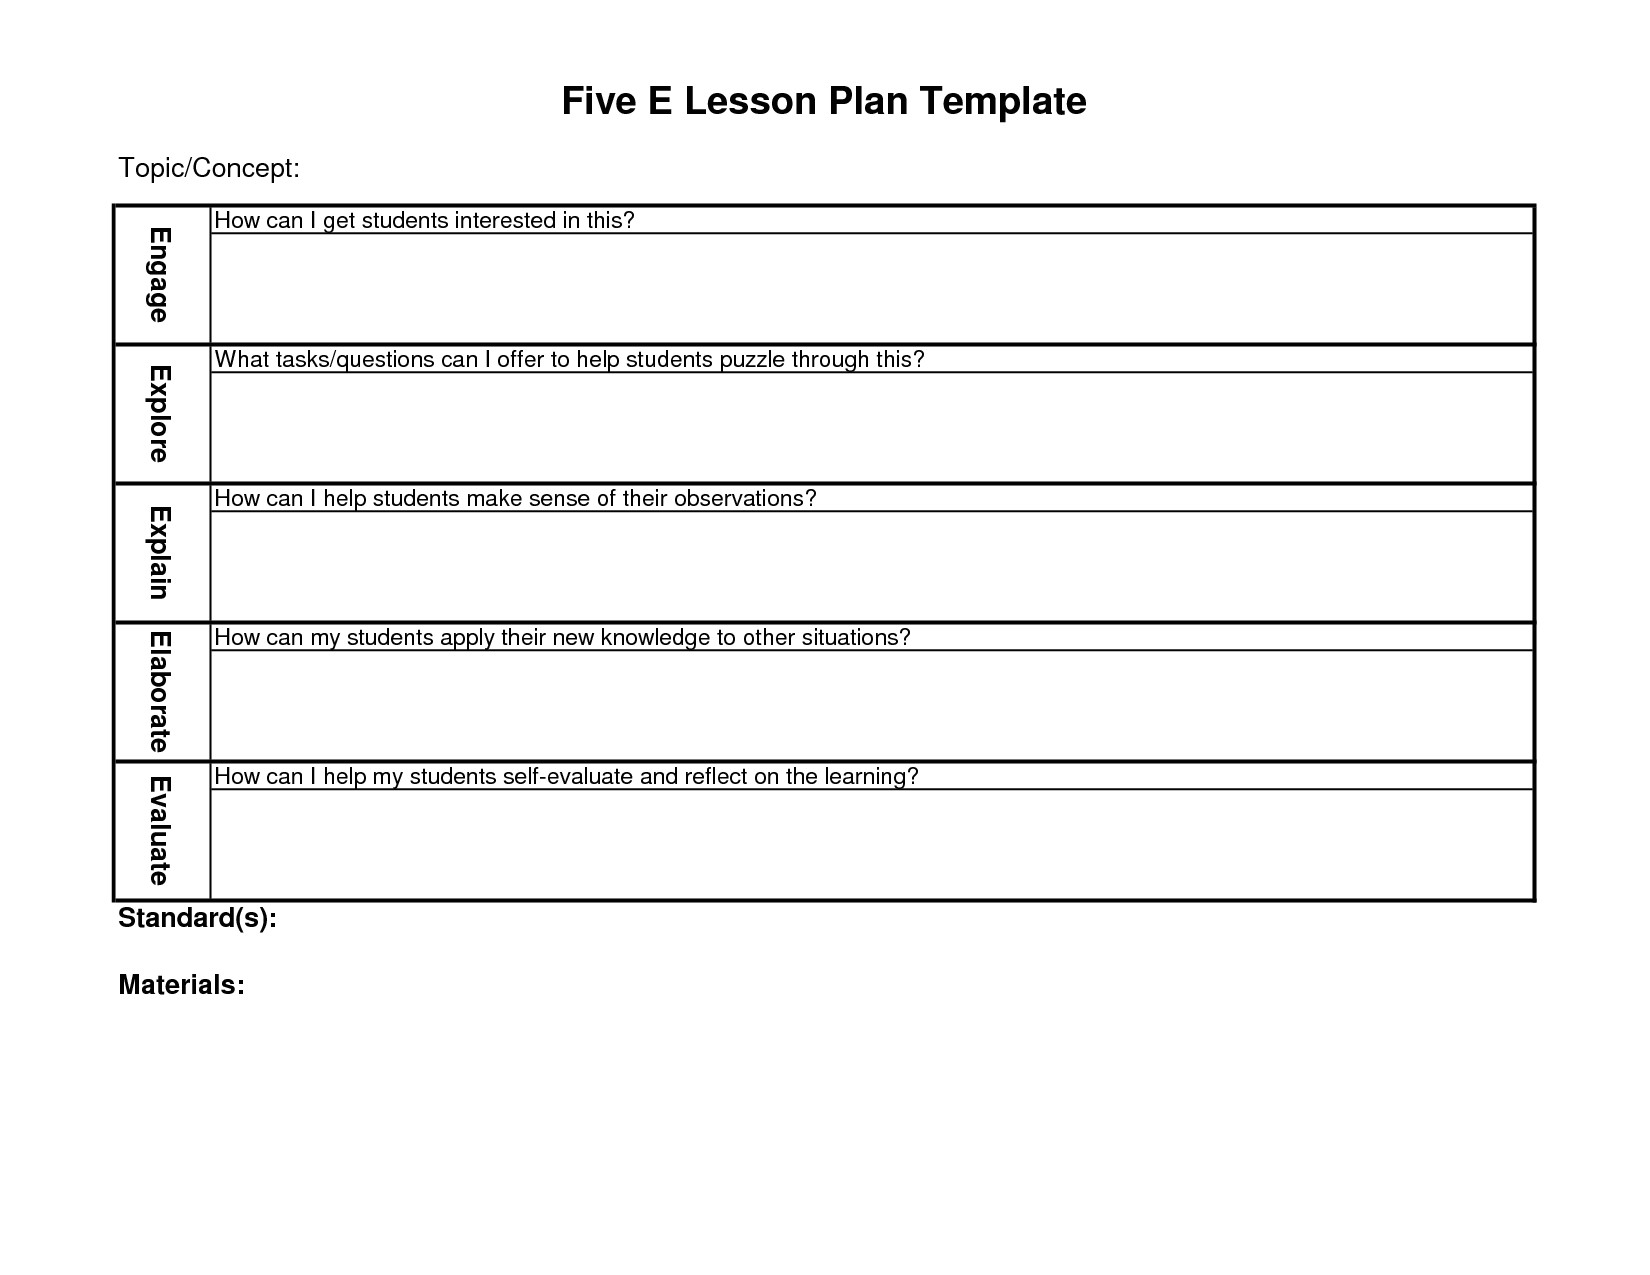 Blank 5 E Lesson Plan Template 5 E Lesson Plan Google Search Nt 39 Uti Pinterest